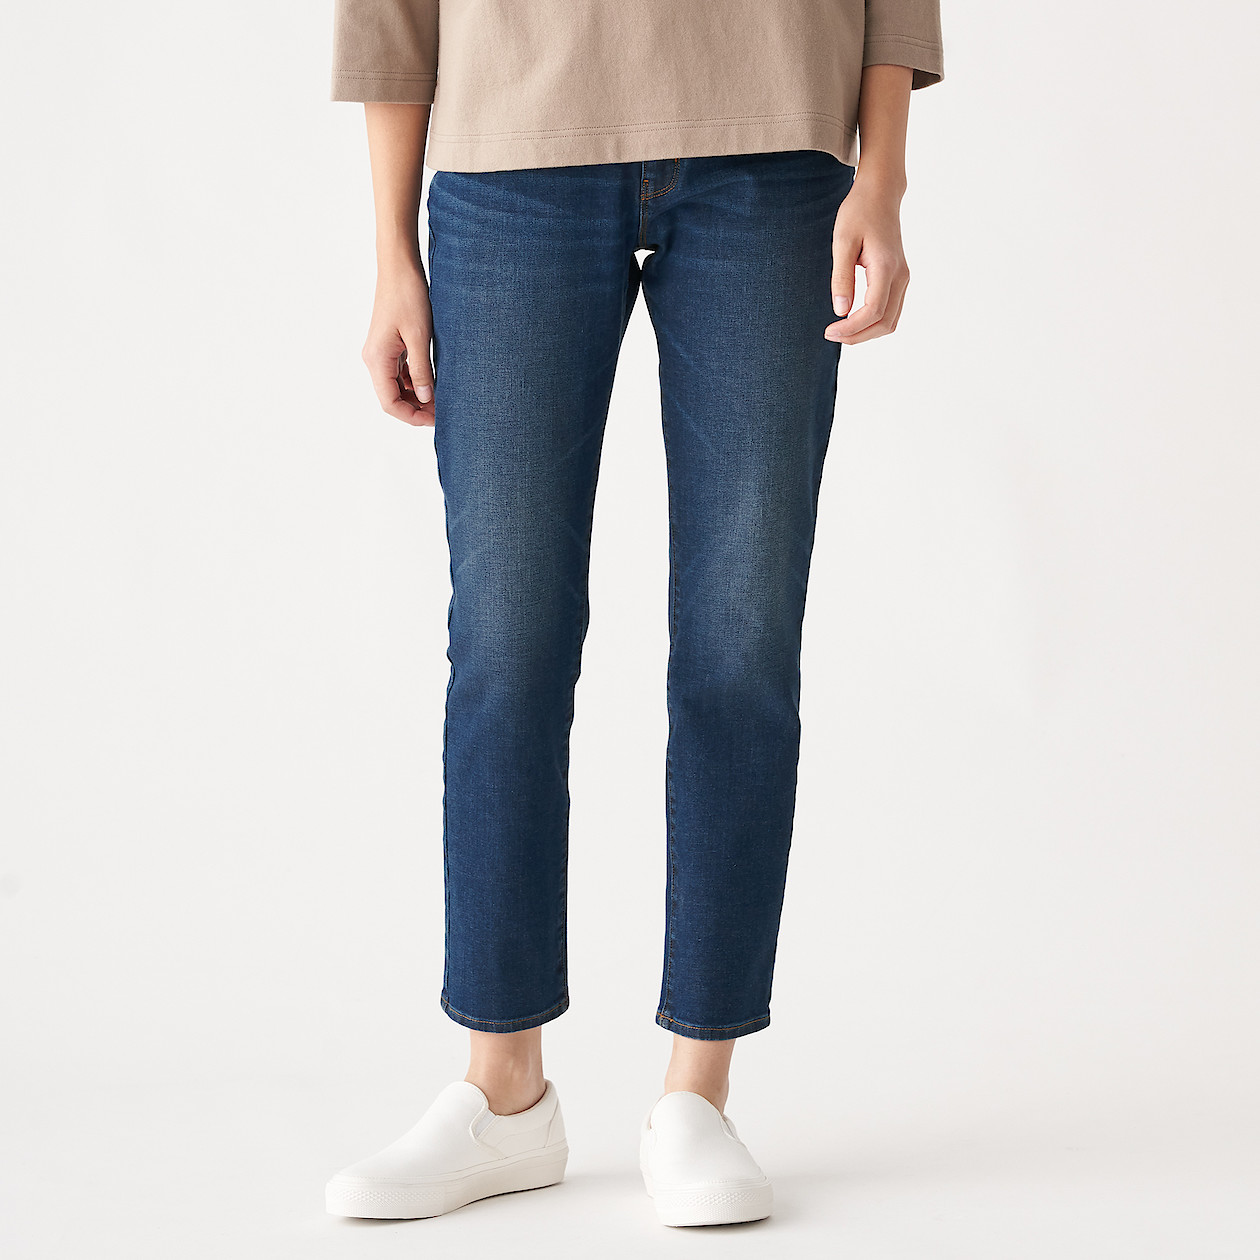 Ladies' Organic Cotton 4-Way Stretch Denim Slim Straight